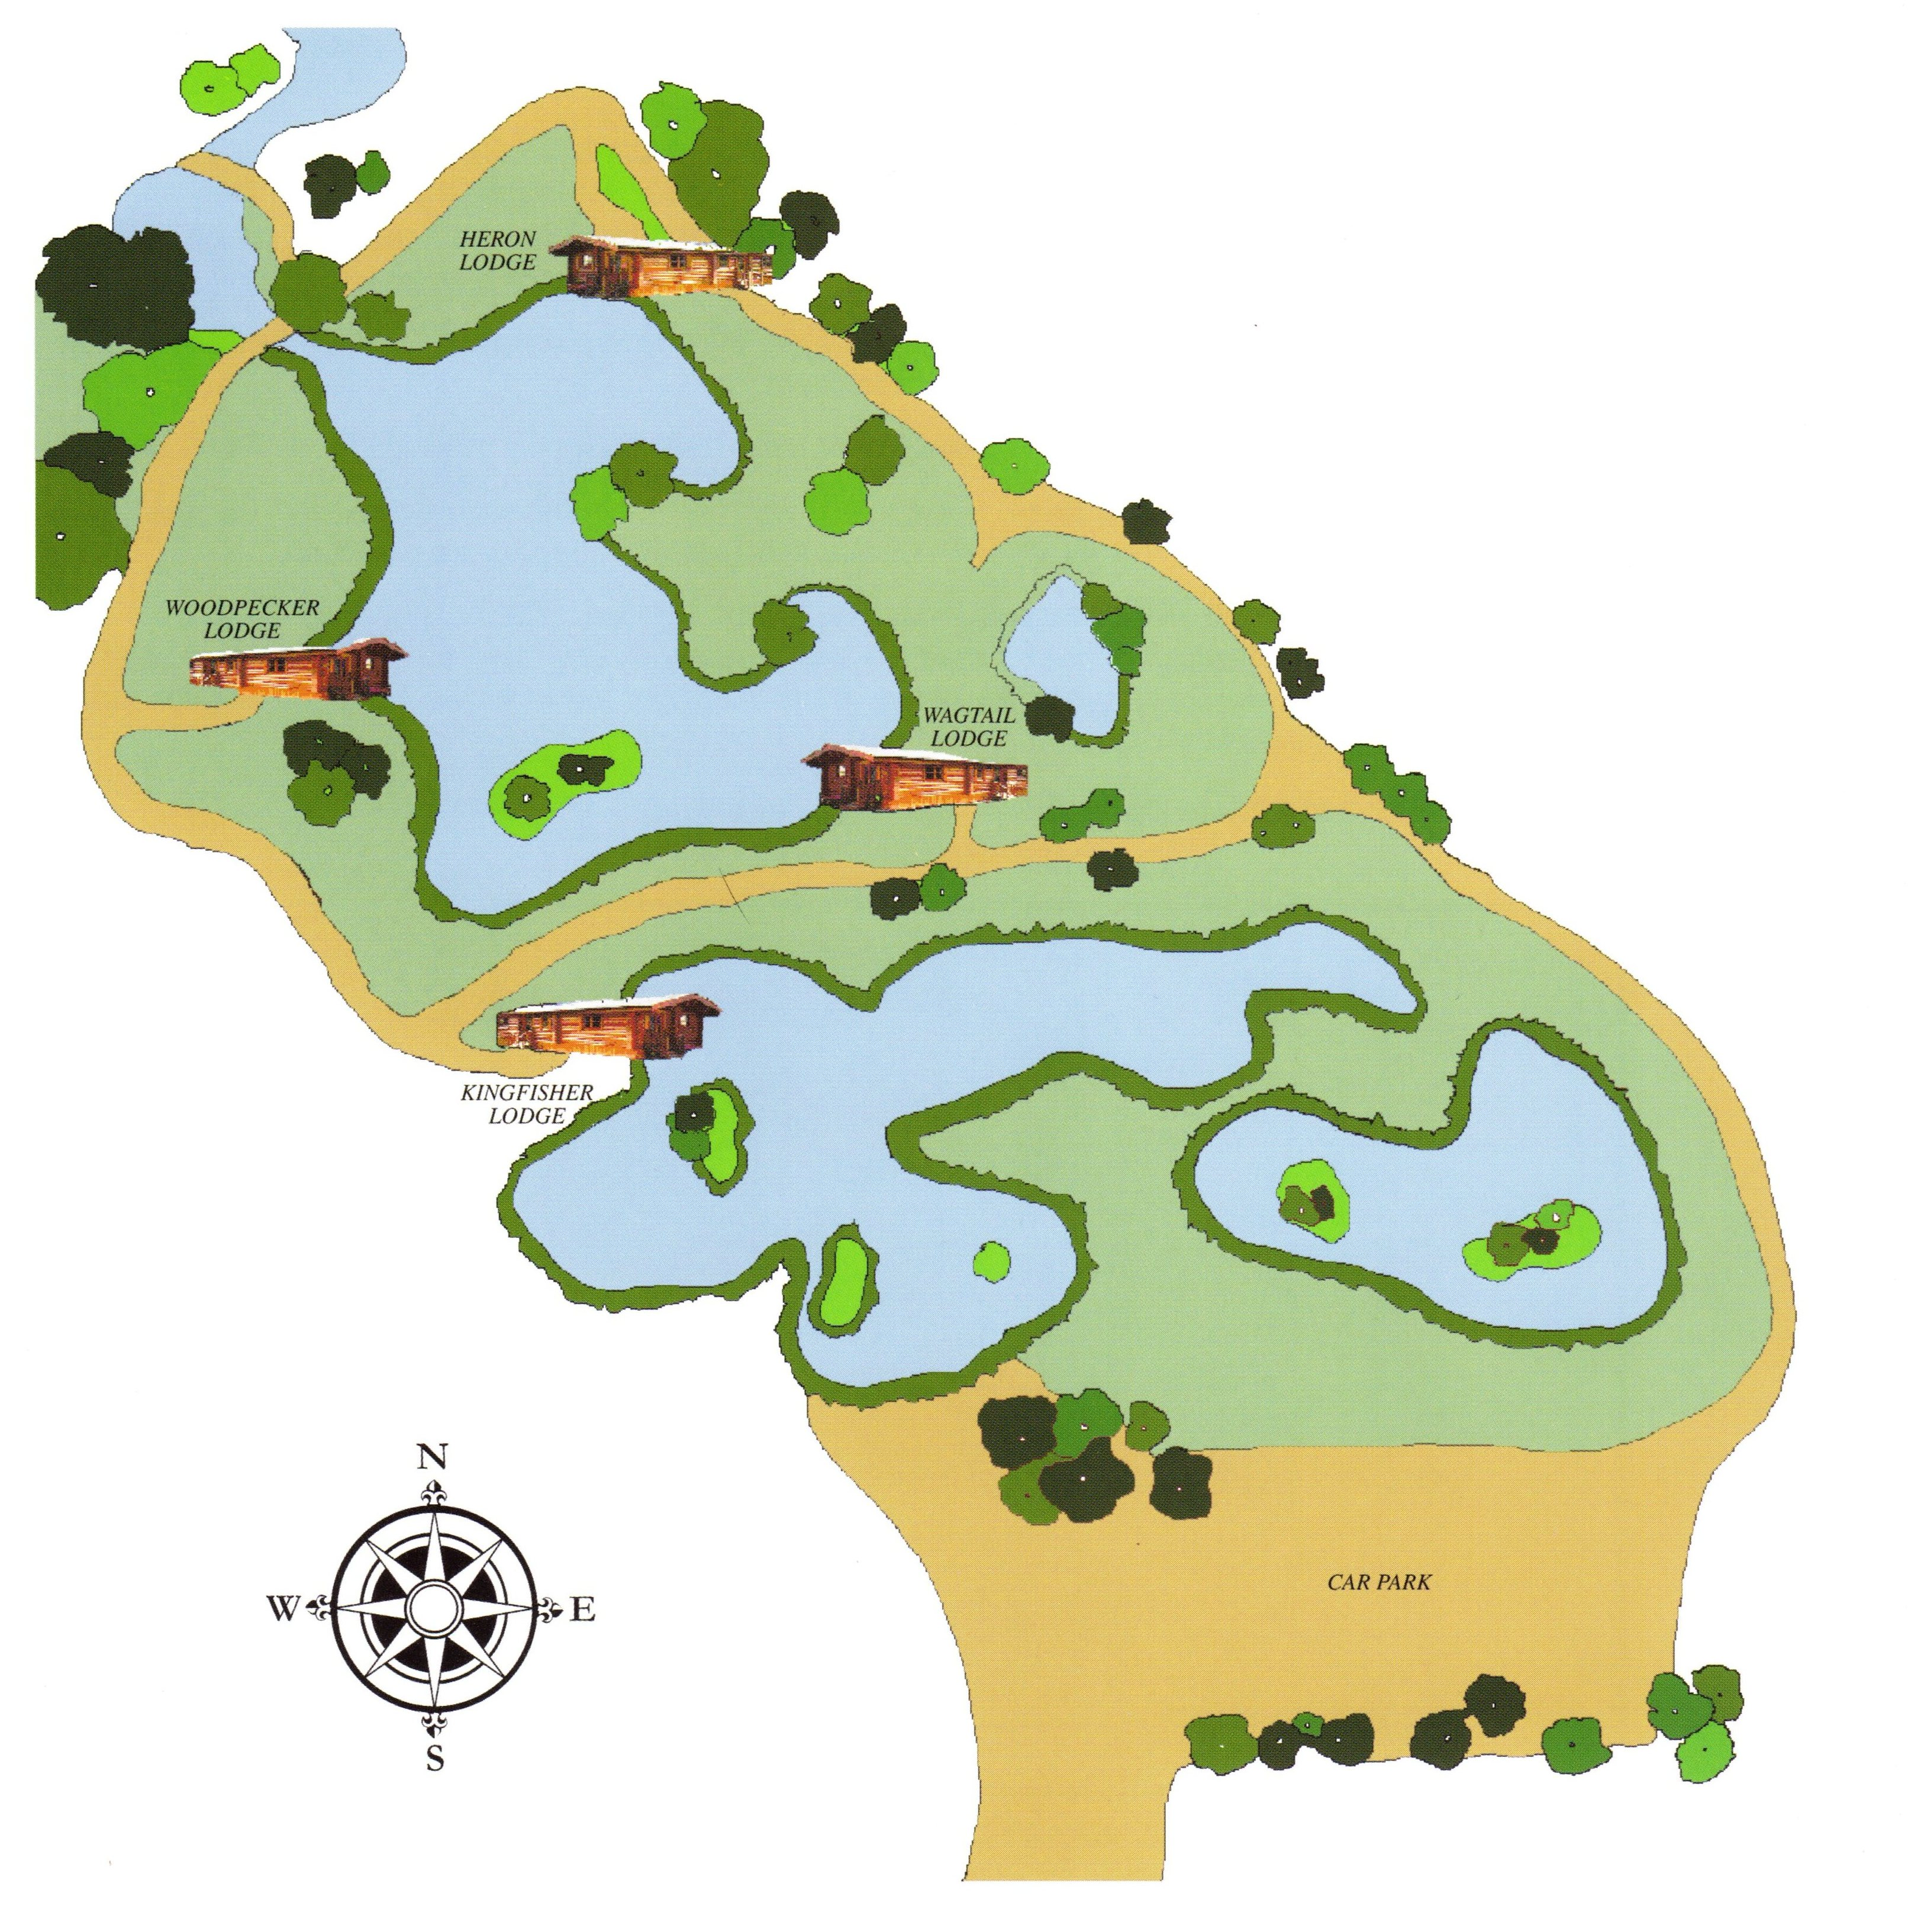 Map of Badwell Ash Holiday Lodges with Fishing Lakes